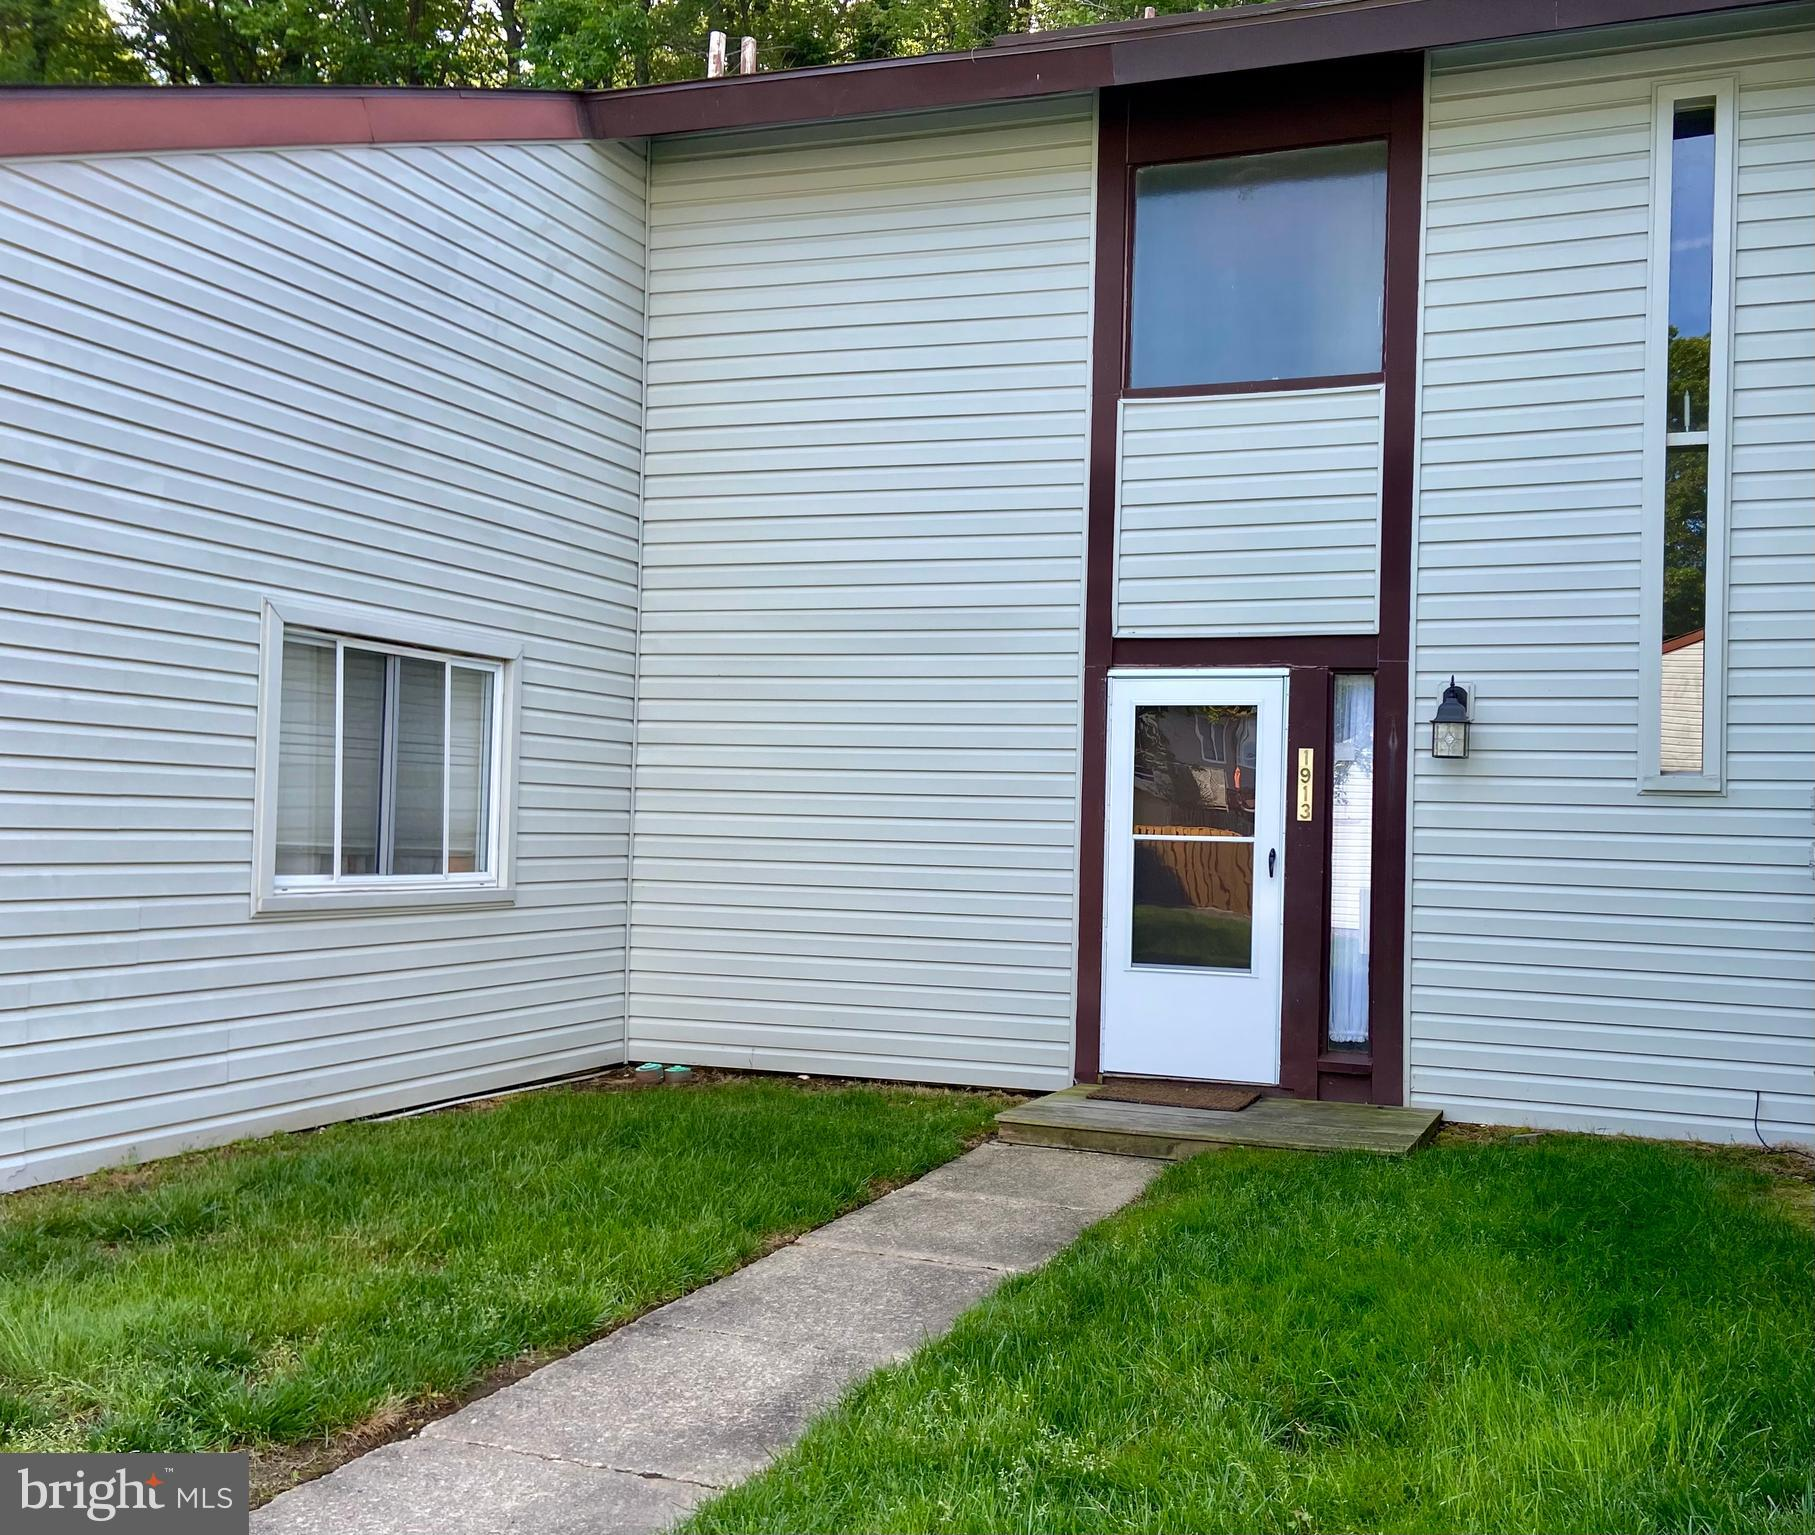 Wonderful 2 Bedroom, 1 bath condo with 1 car garage. Backs to woods. Updated kitchen with granite counters. Pergo flooring throughout main level. Fenced yard with large deck.  Bring your TLC to this unit!